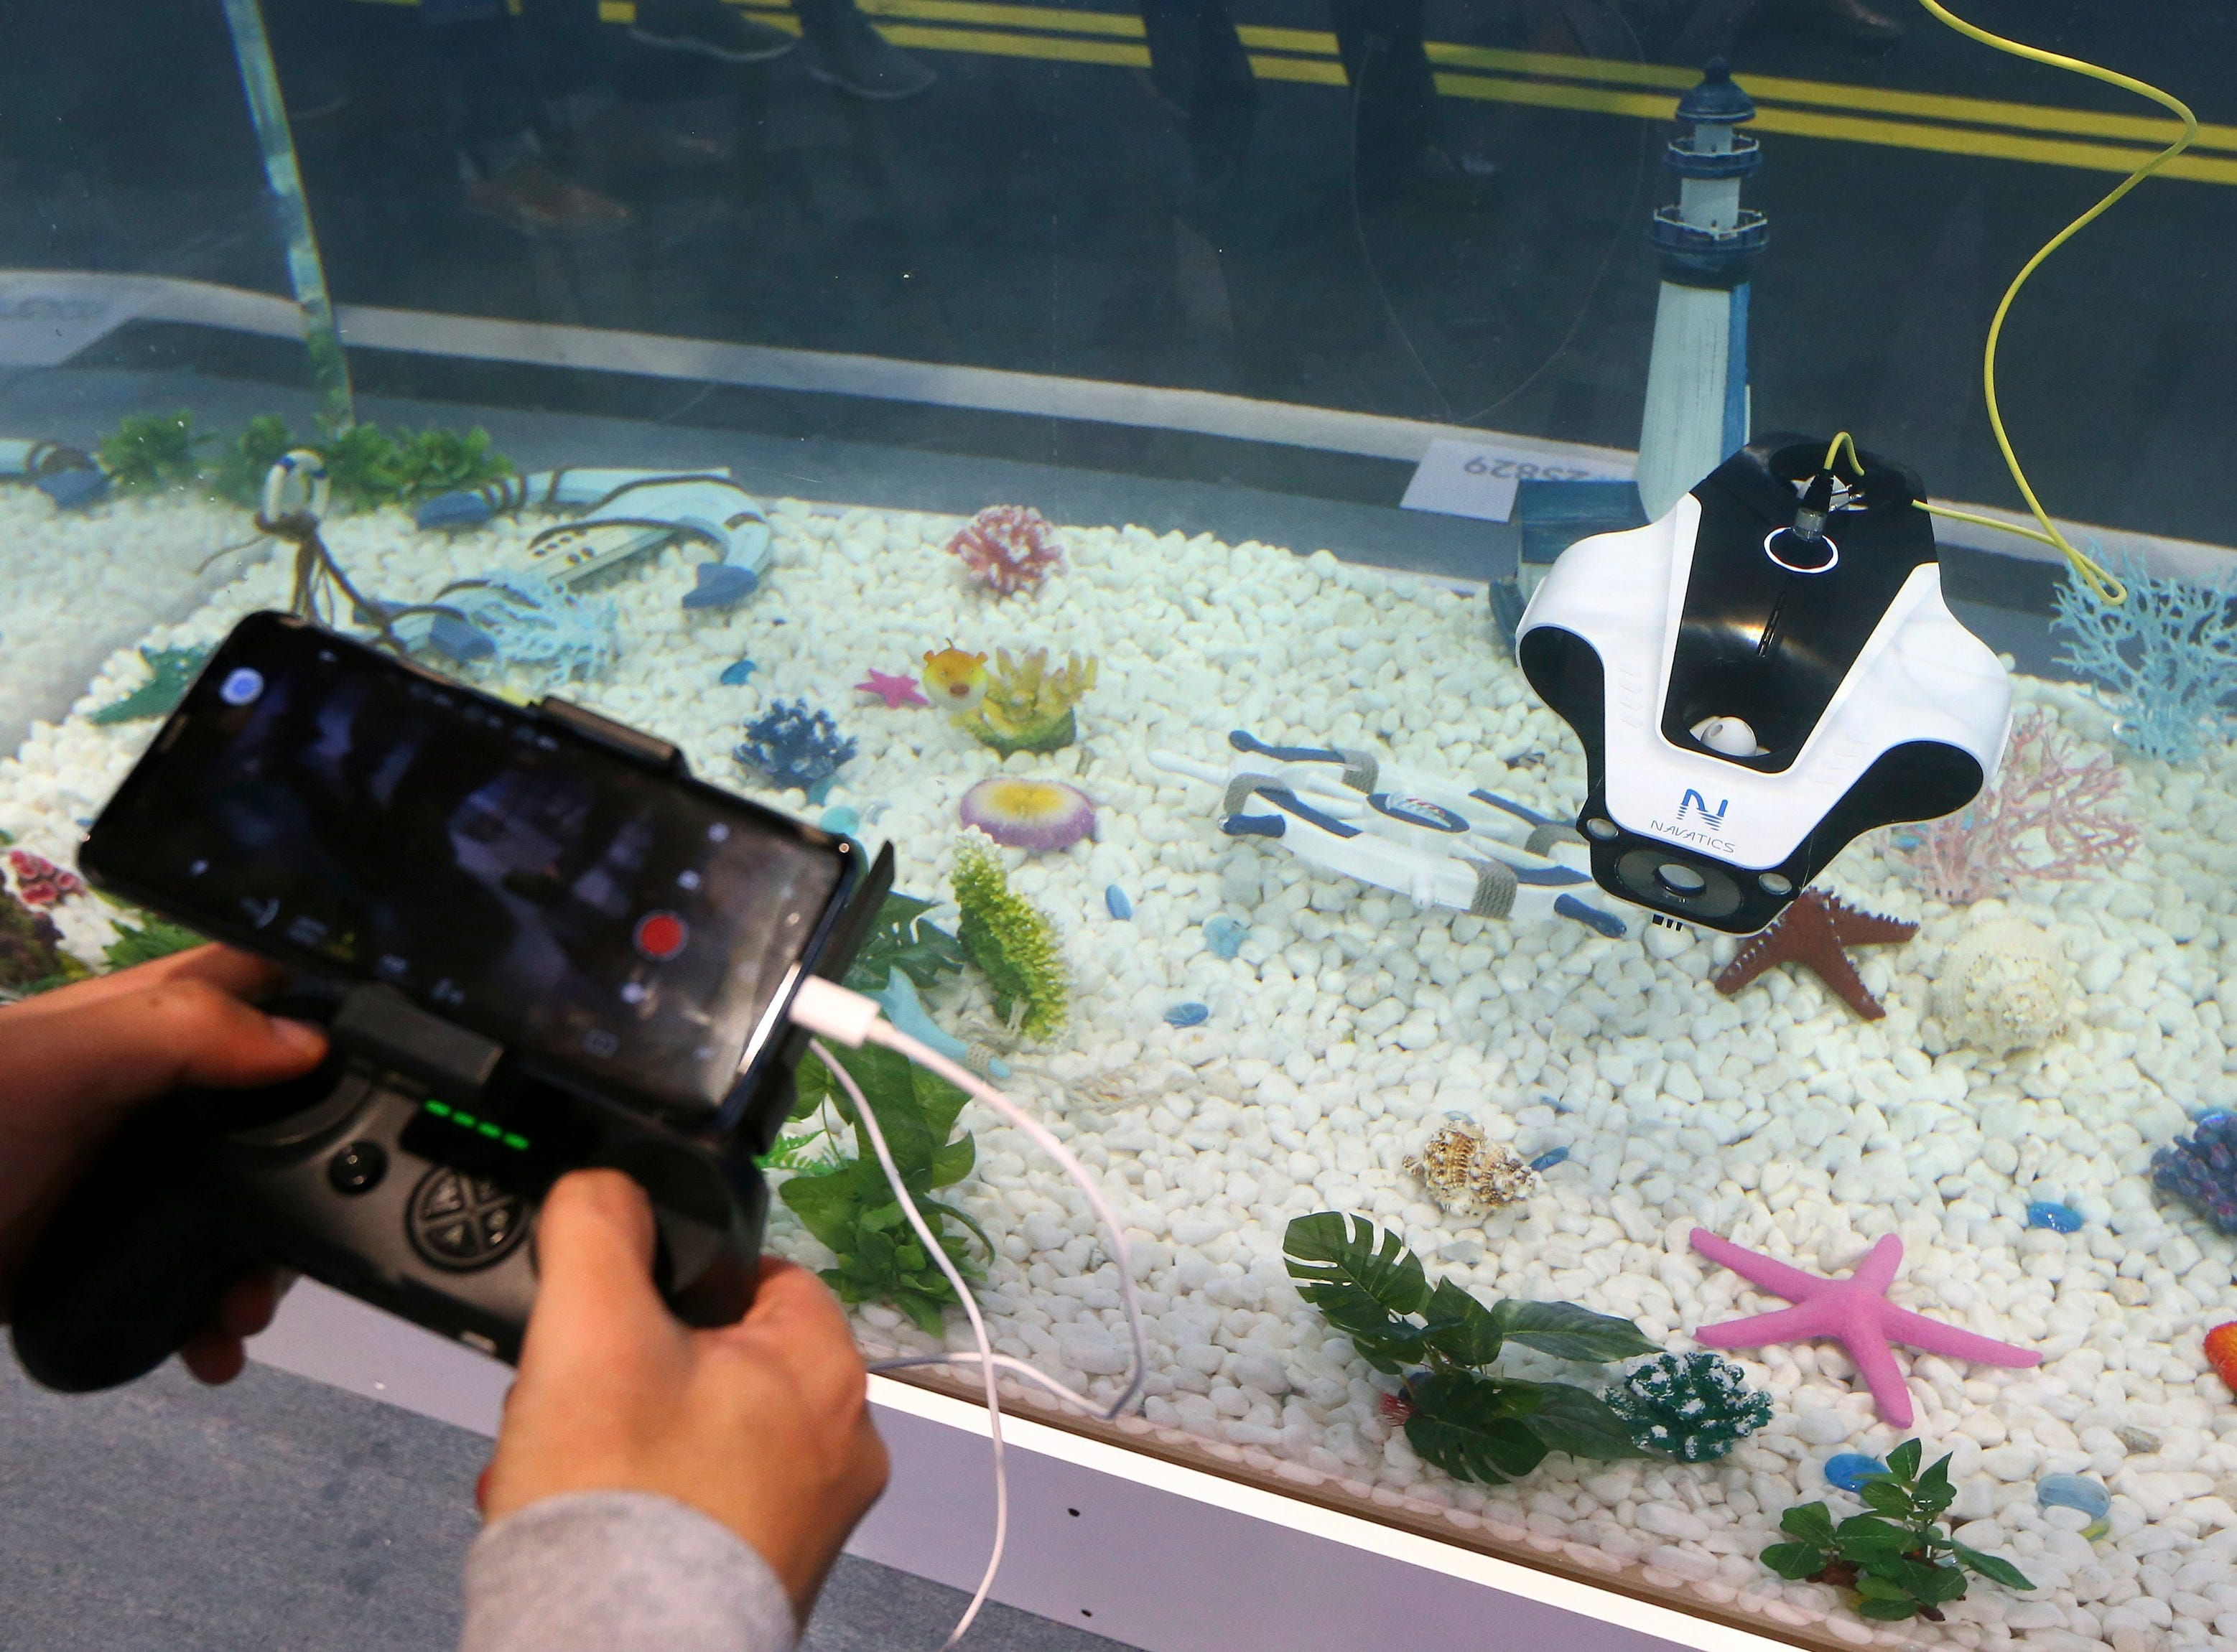 Navatics MITO shows off its underwater drone in an aquarium at their display booth at CES International on Tuesday, Jan. 8, 2019, in Las Vegas.